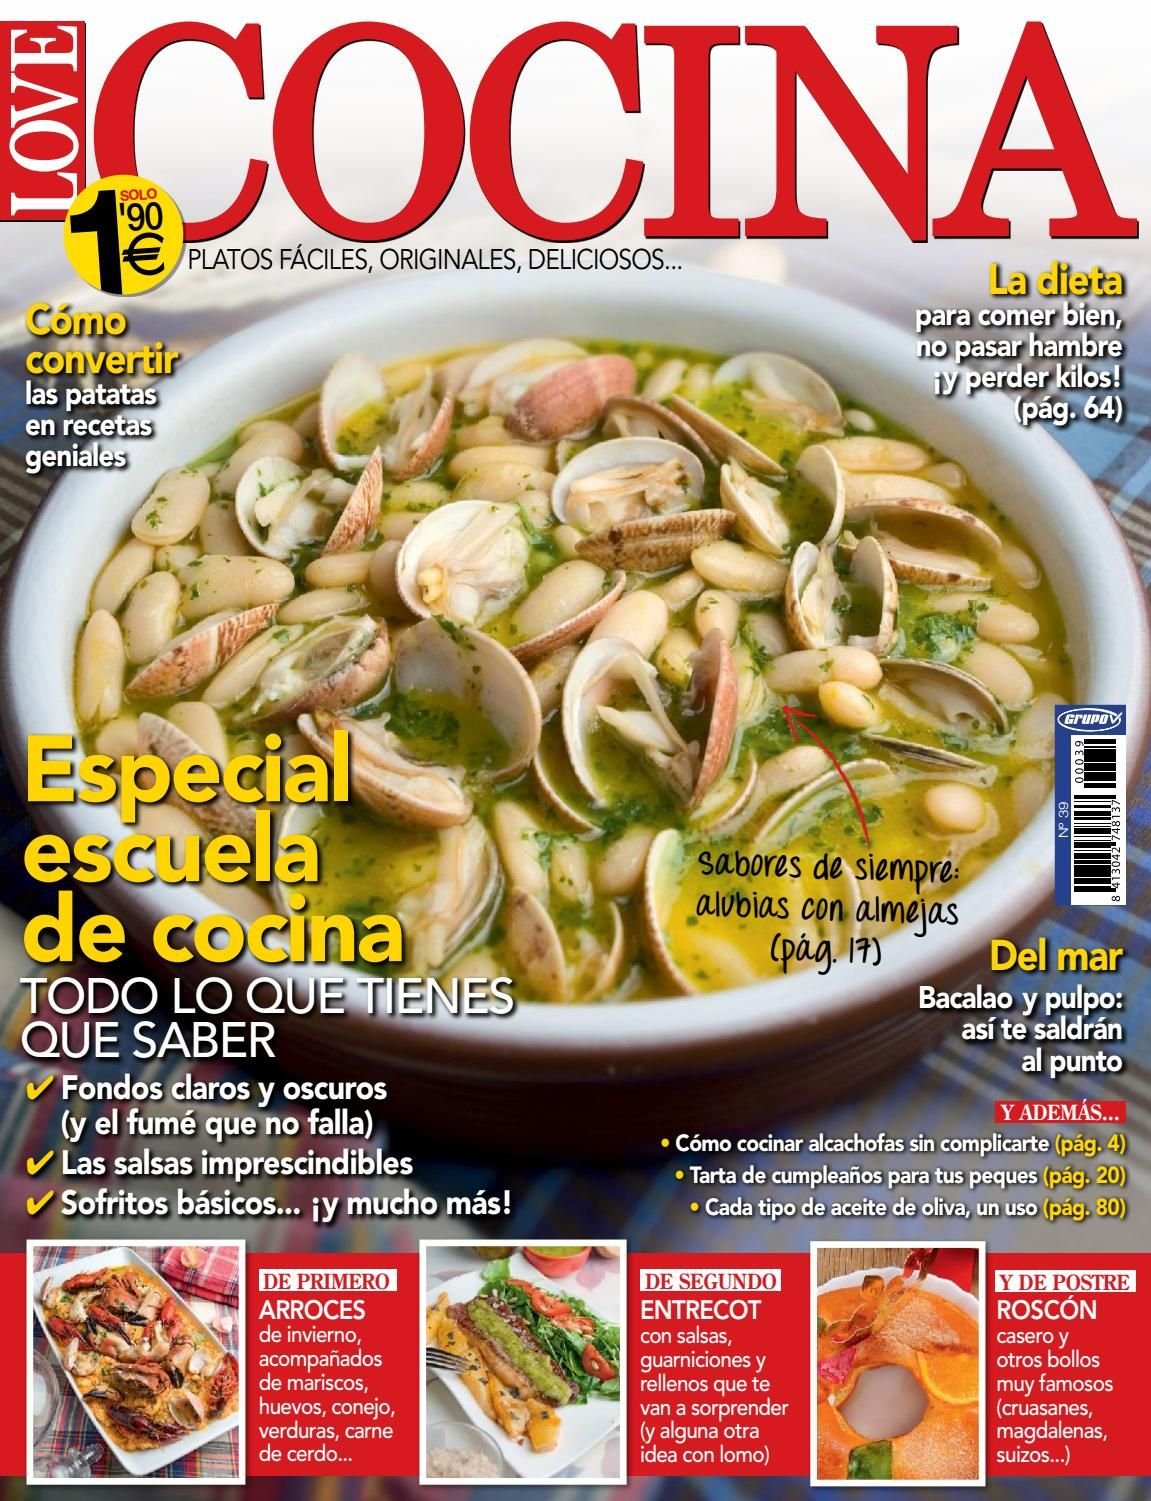 Issuu is a digital publishing platform that makes it simple to publish  magazines, catalogs, newspapers, books, and more online.